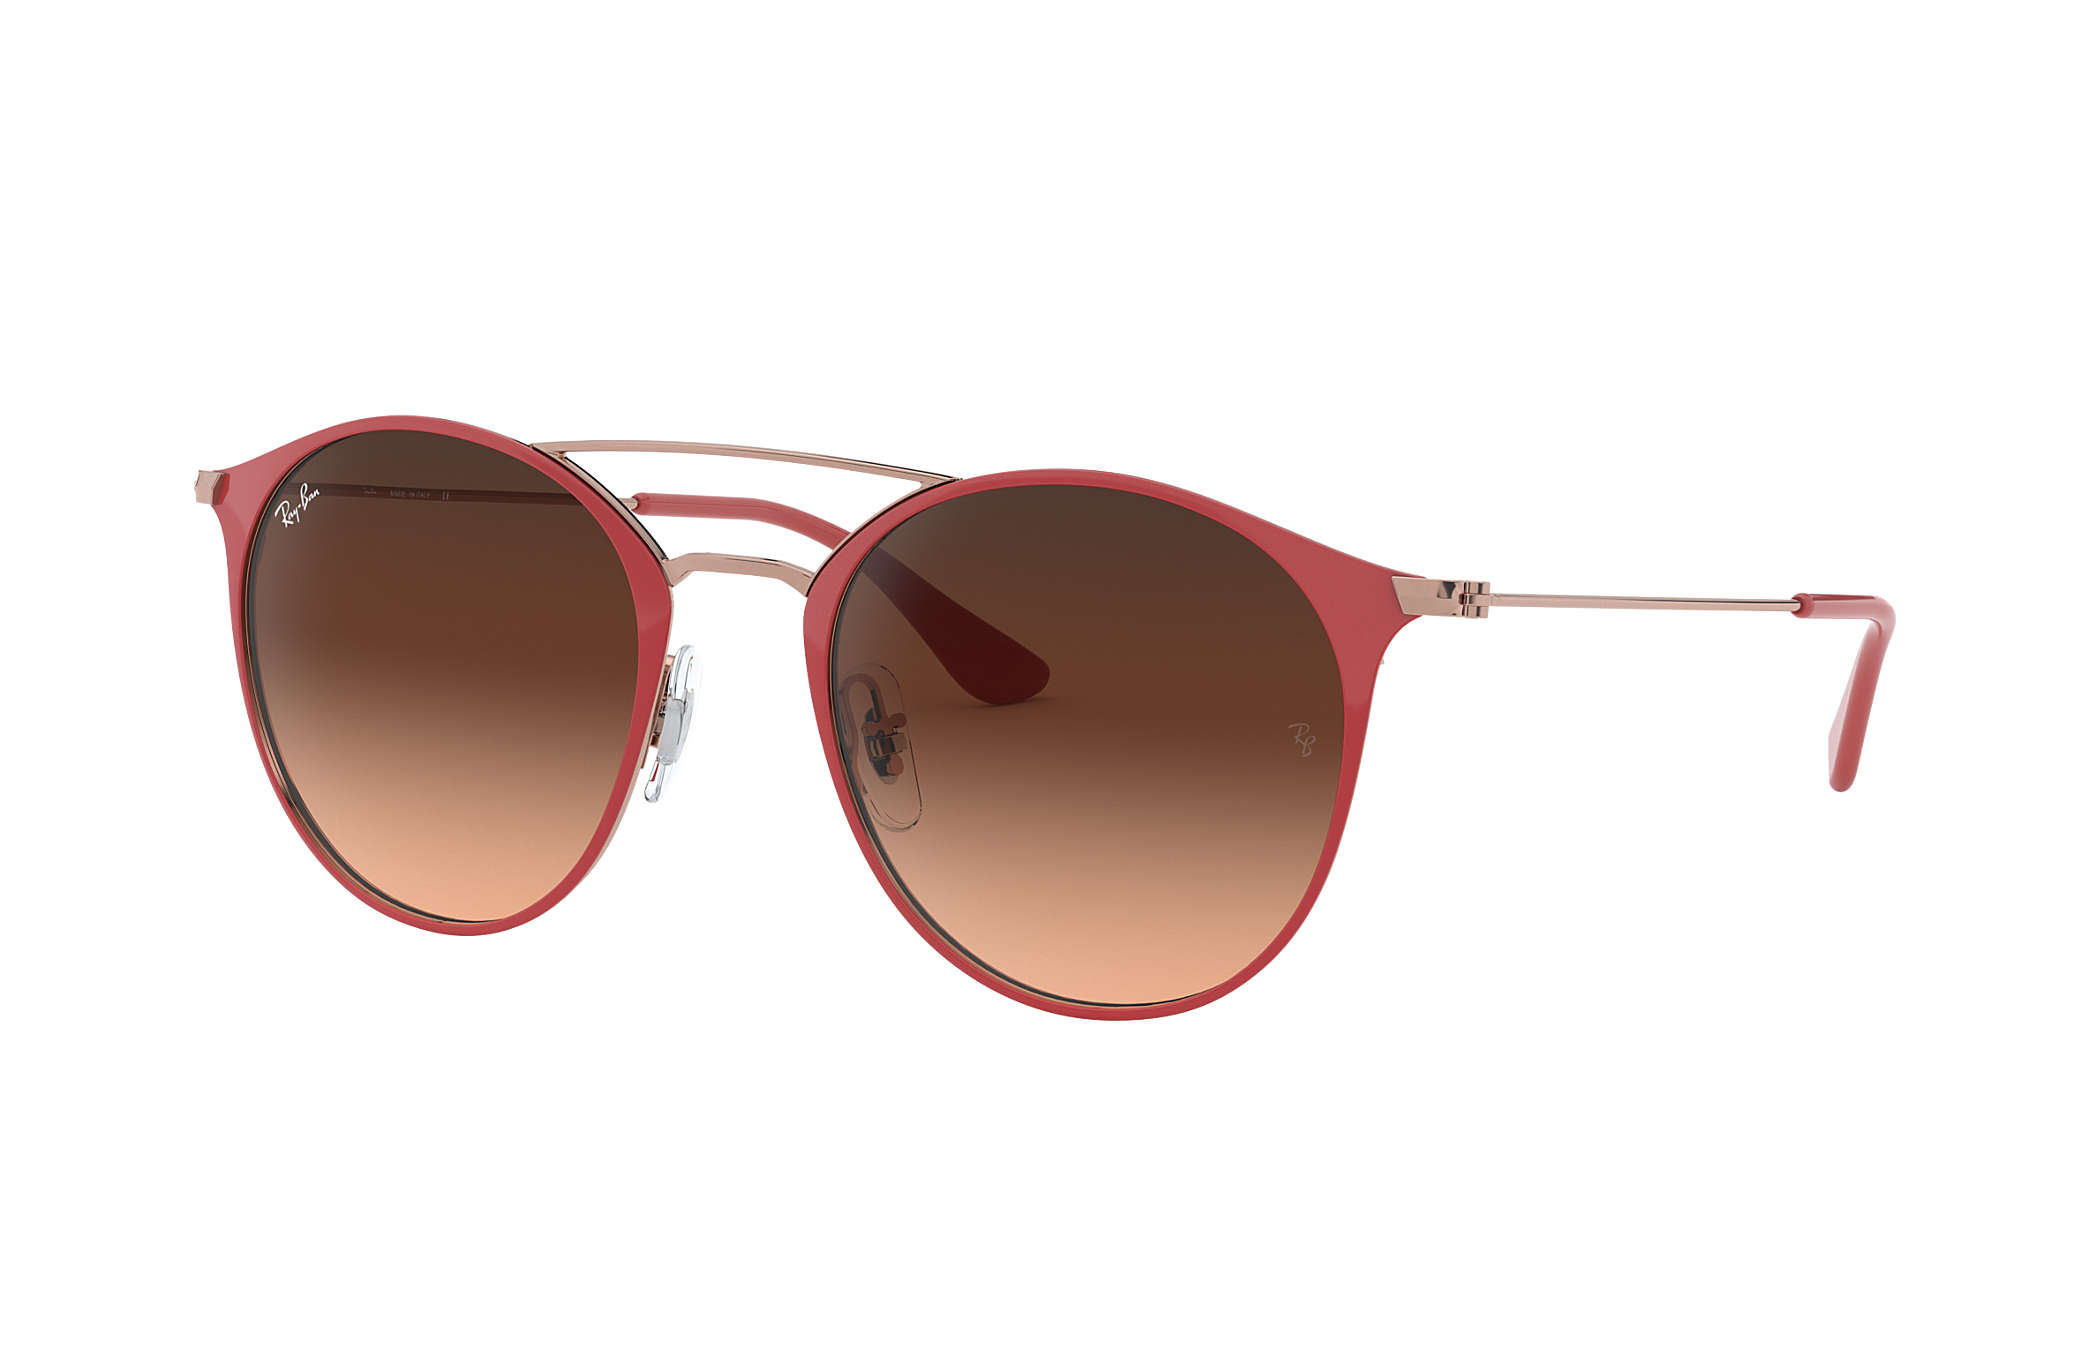 Ray-Ban RB3546 Red - Steel - Pink Brown Lenses - 0RB354690727152 ... 79bddc05941